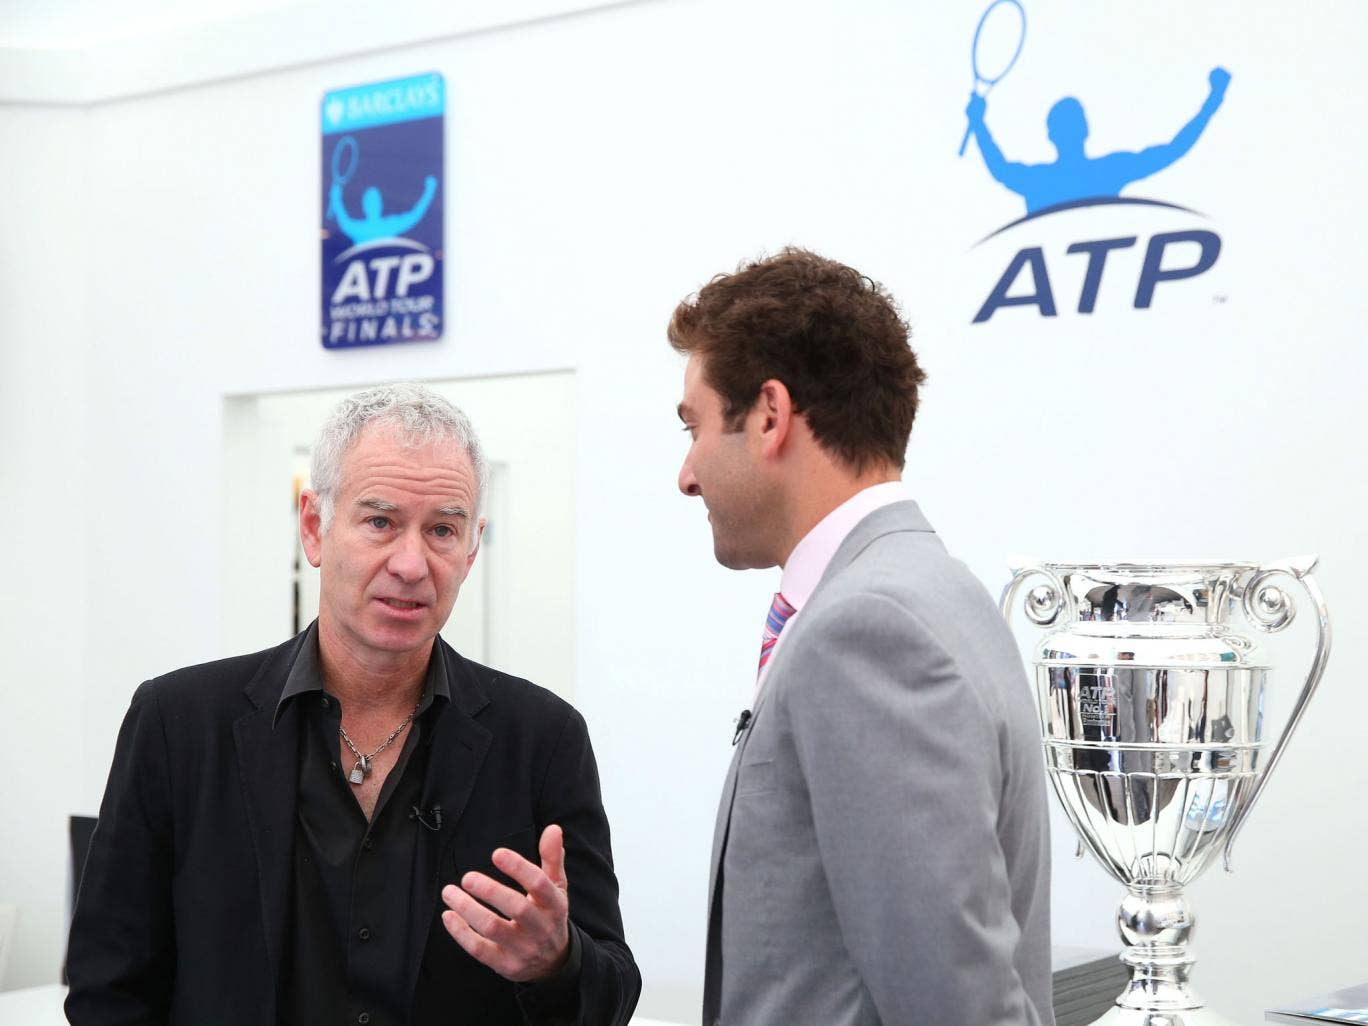 Perhaps John McEnroe, left, was indulging Court One with some more knockabout veteran doubles